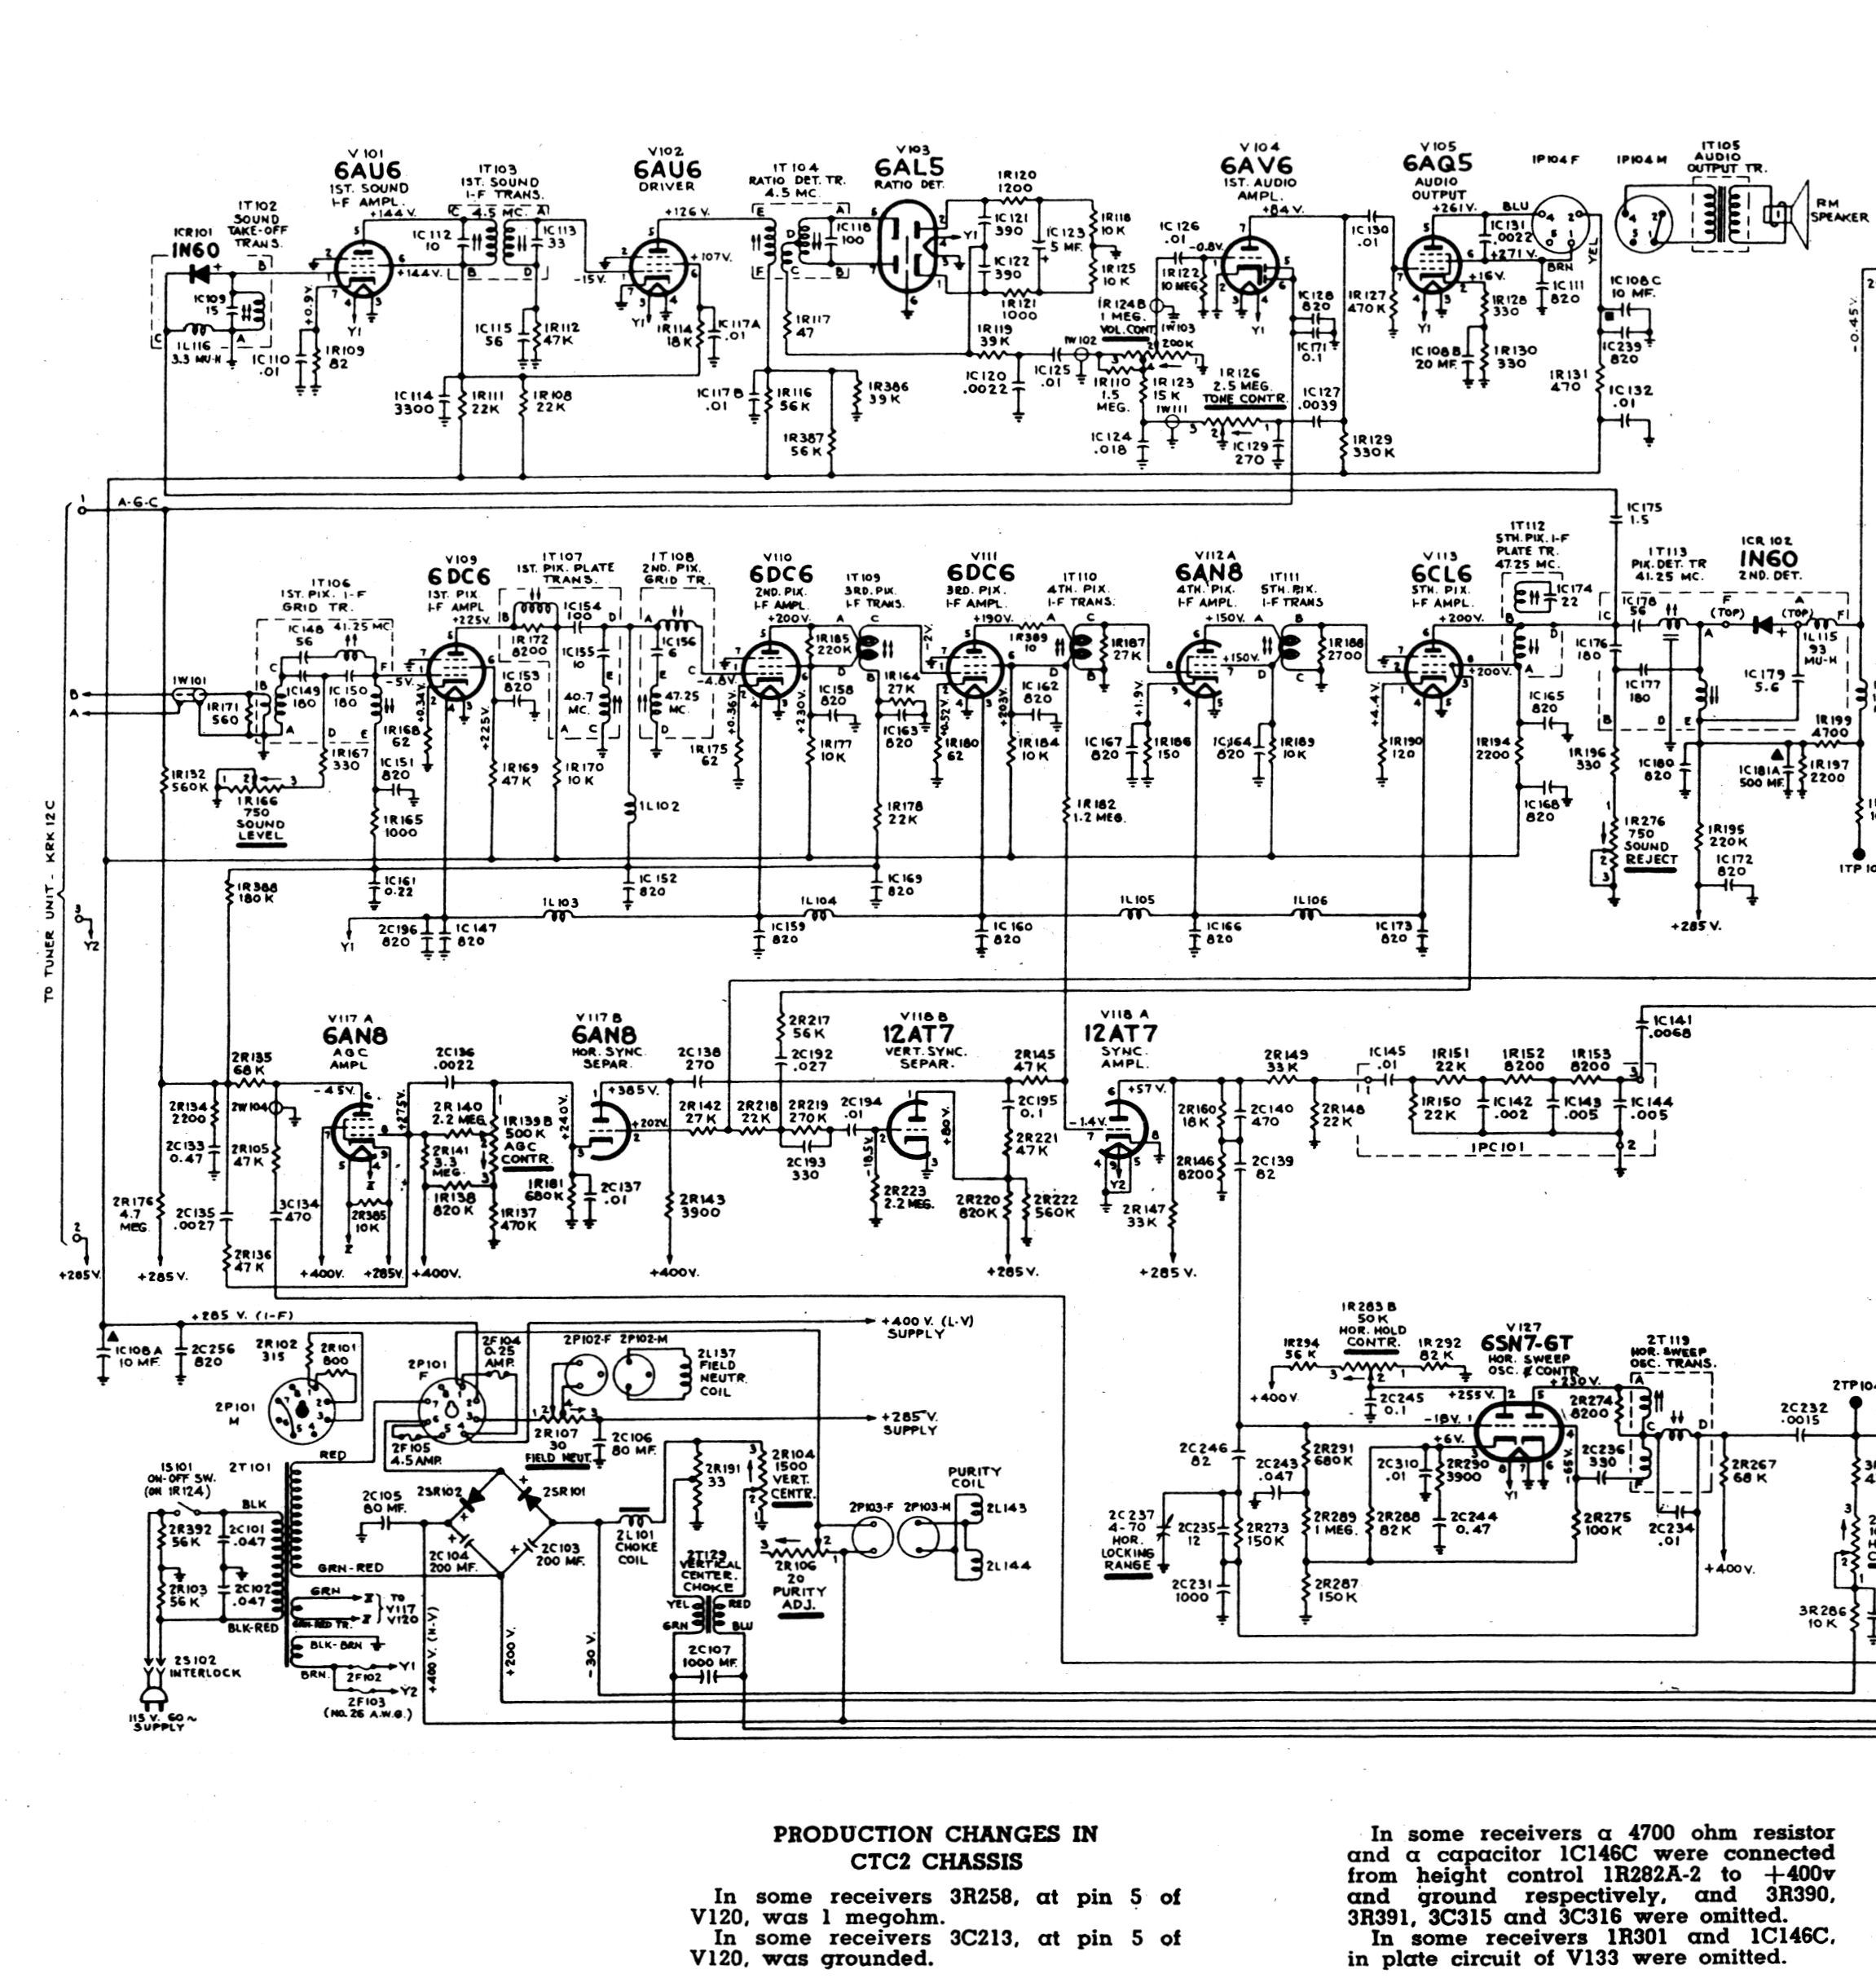 Rca Wiring Diagram Another Blog About Rj45 Jack Television Service Manual Trusted Diagrams Connector